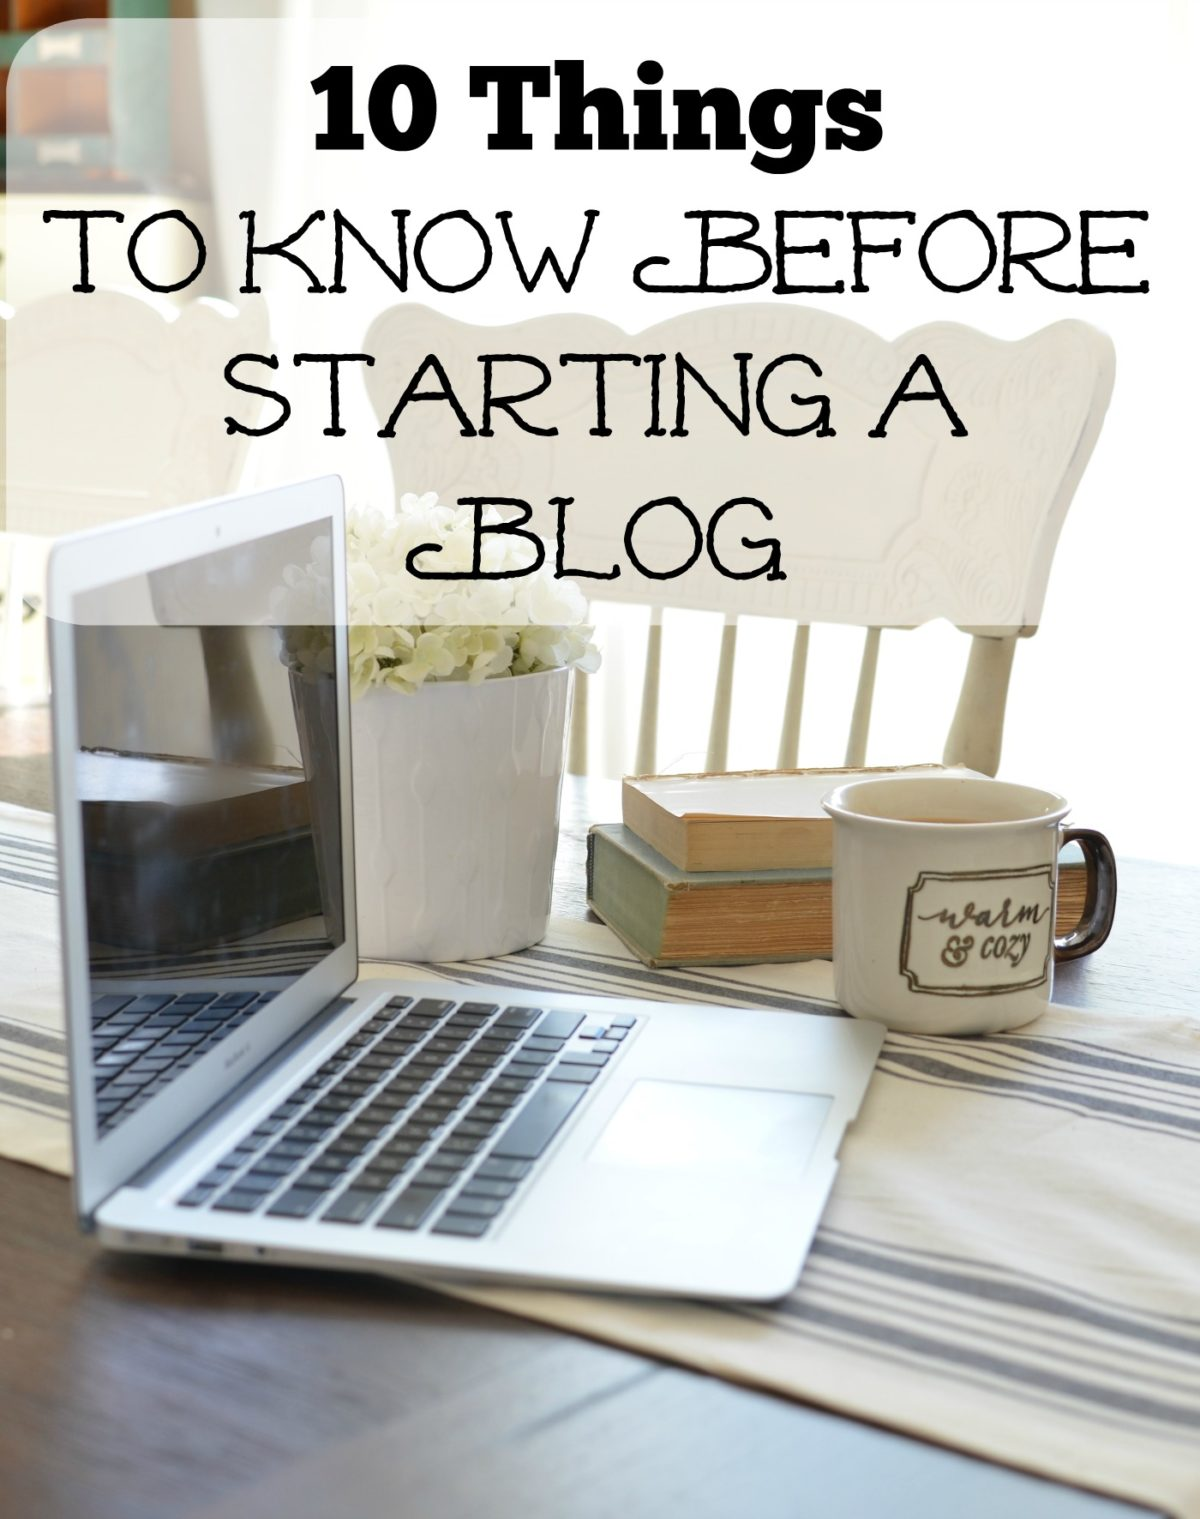 10 things you should know before starting a blog! These honest and practical tips will help you decide if starting a blog is right for you.